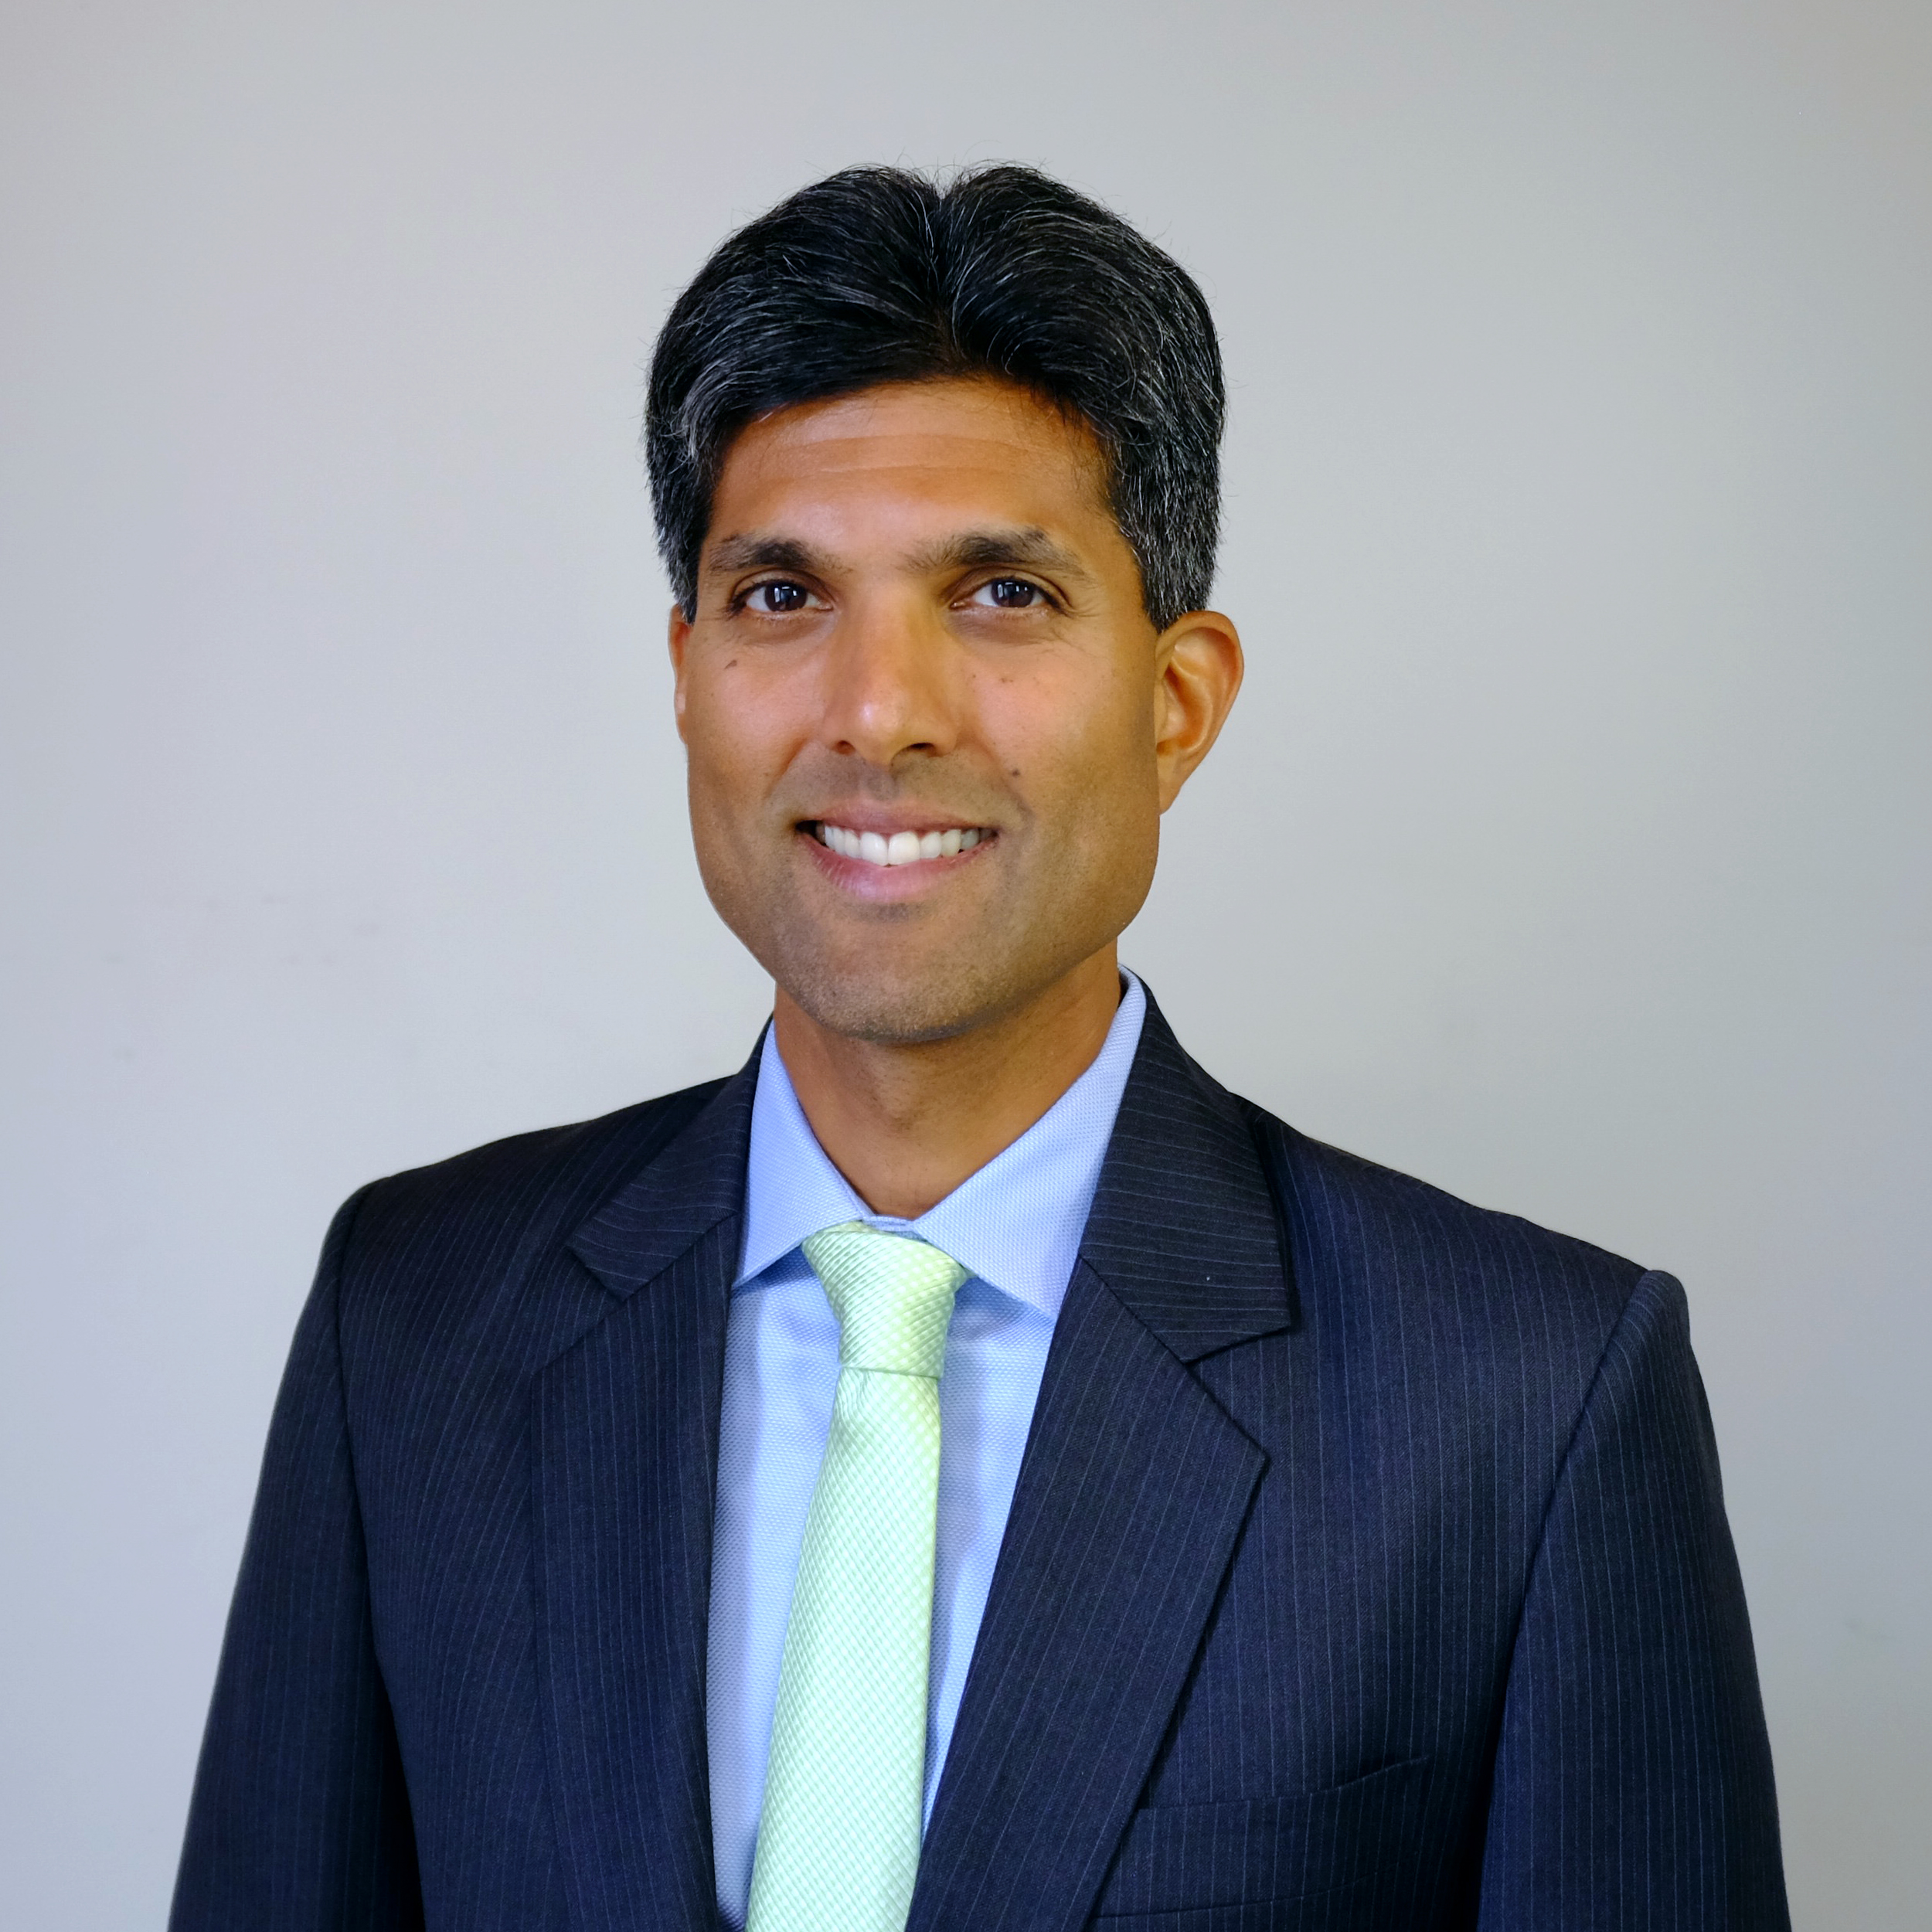 Siddarth Ashvin Shah, M.D., Founder & CEO